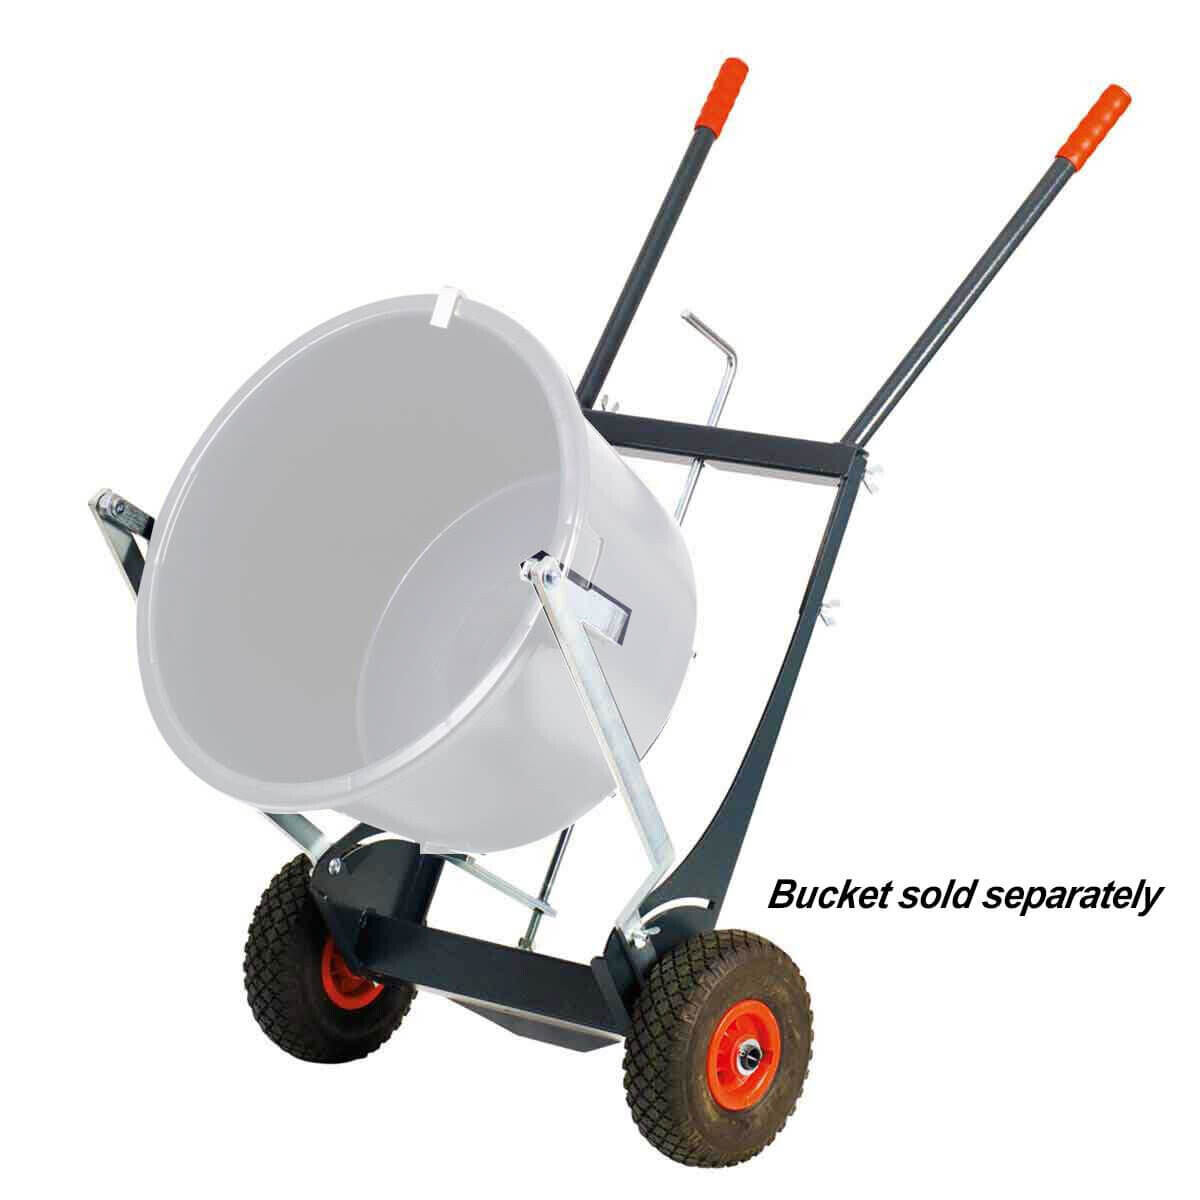 Collomix Bucket Cart, pneumatic tires and bucket tilting device